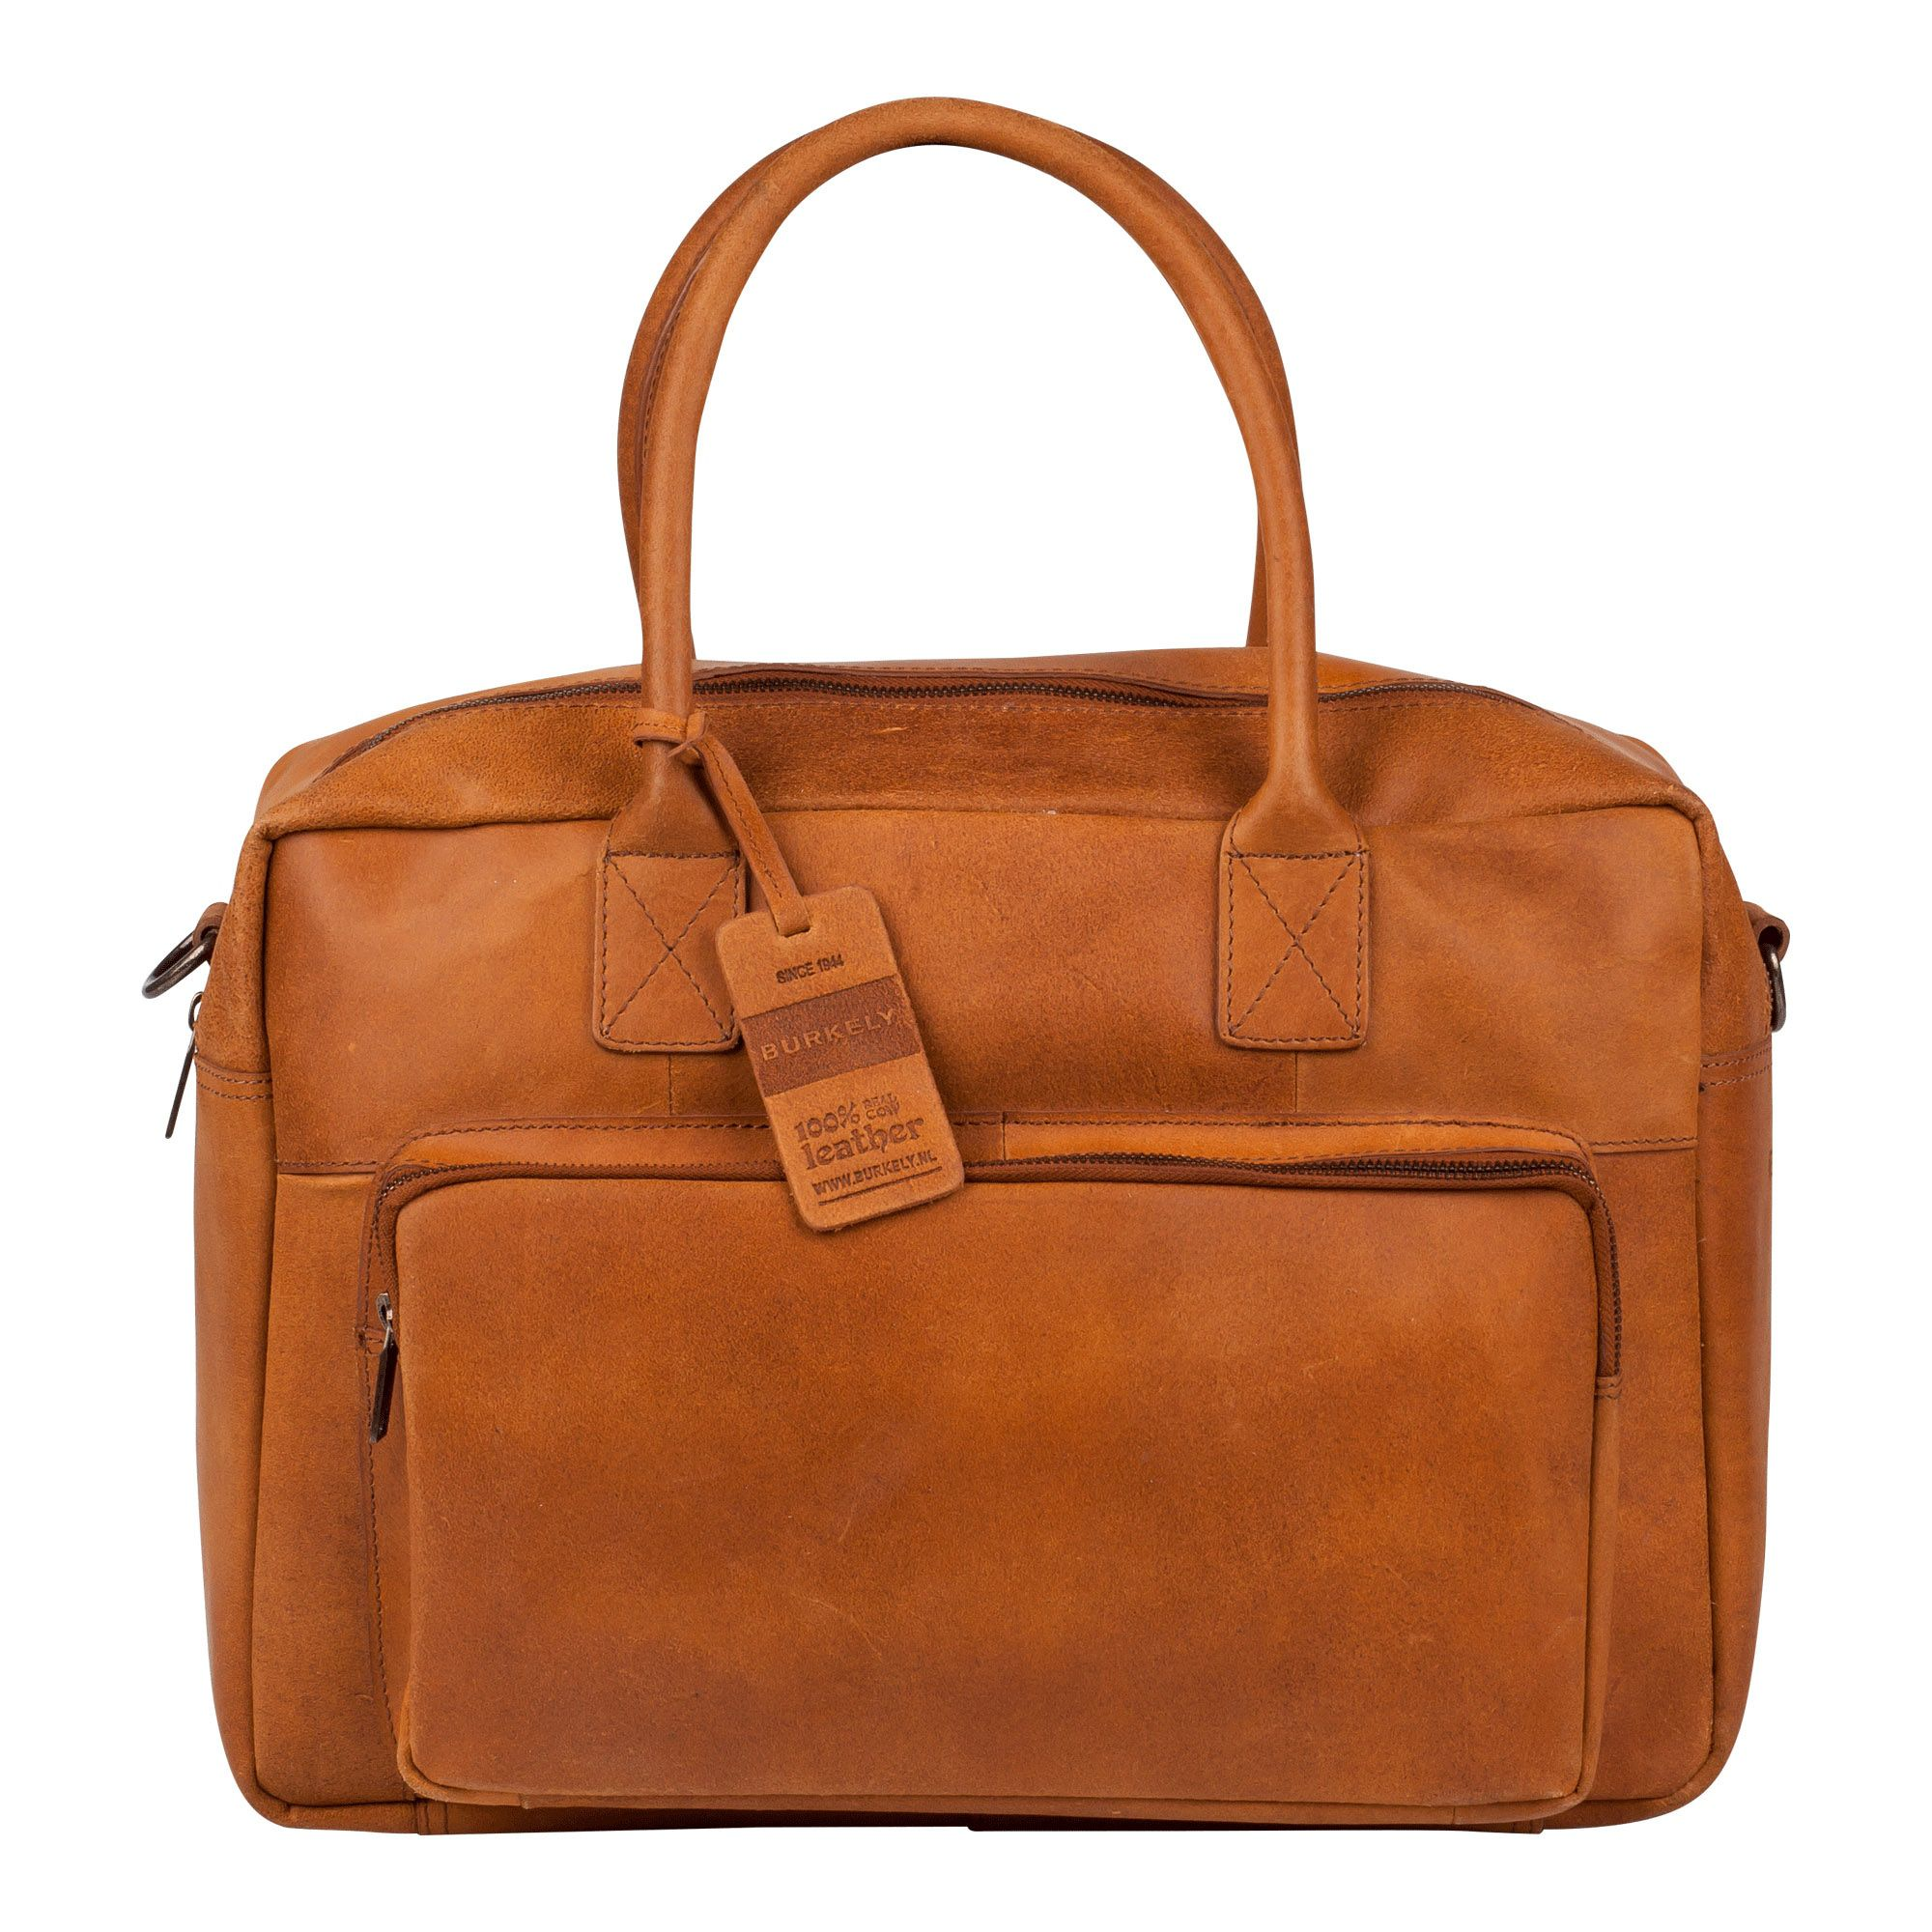 Laptoptas Burkely Mitch Vintage Businessbag Cognac 14 inch